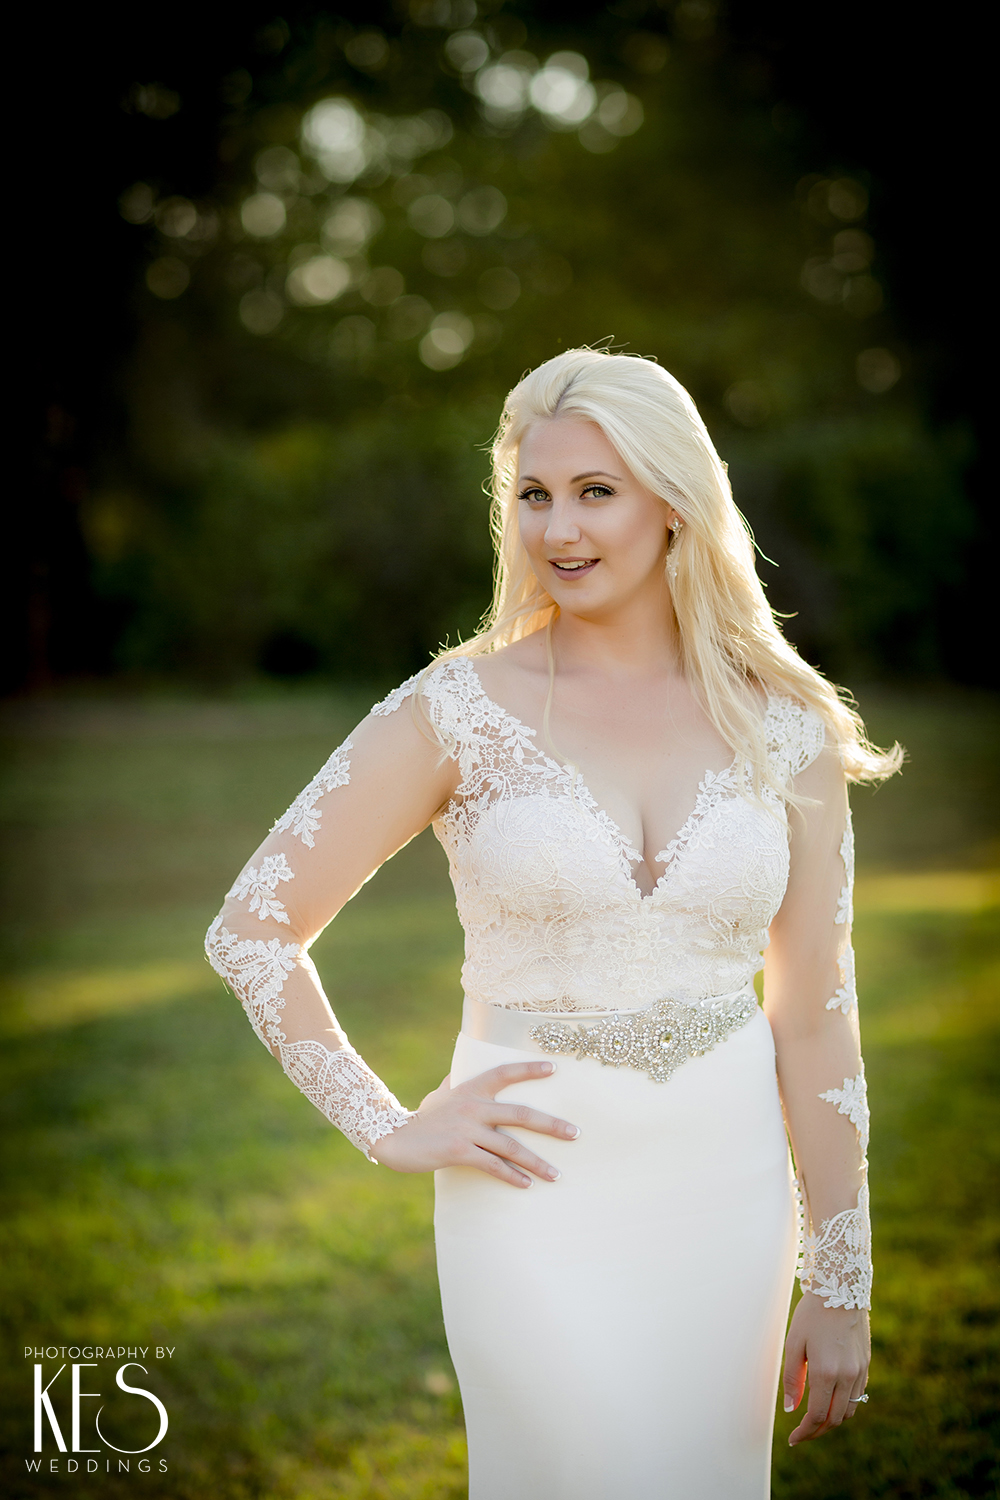 Marlsgate_Bridals_KES_Weddings_21.JPG